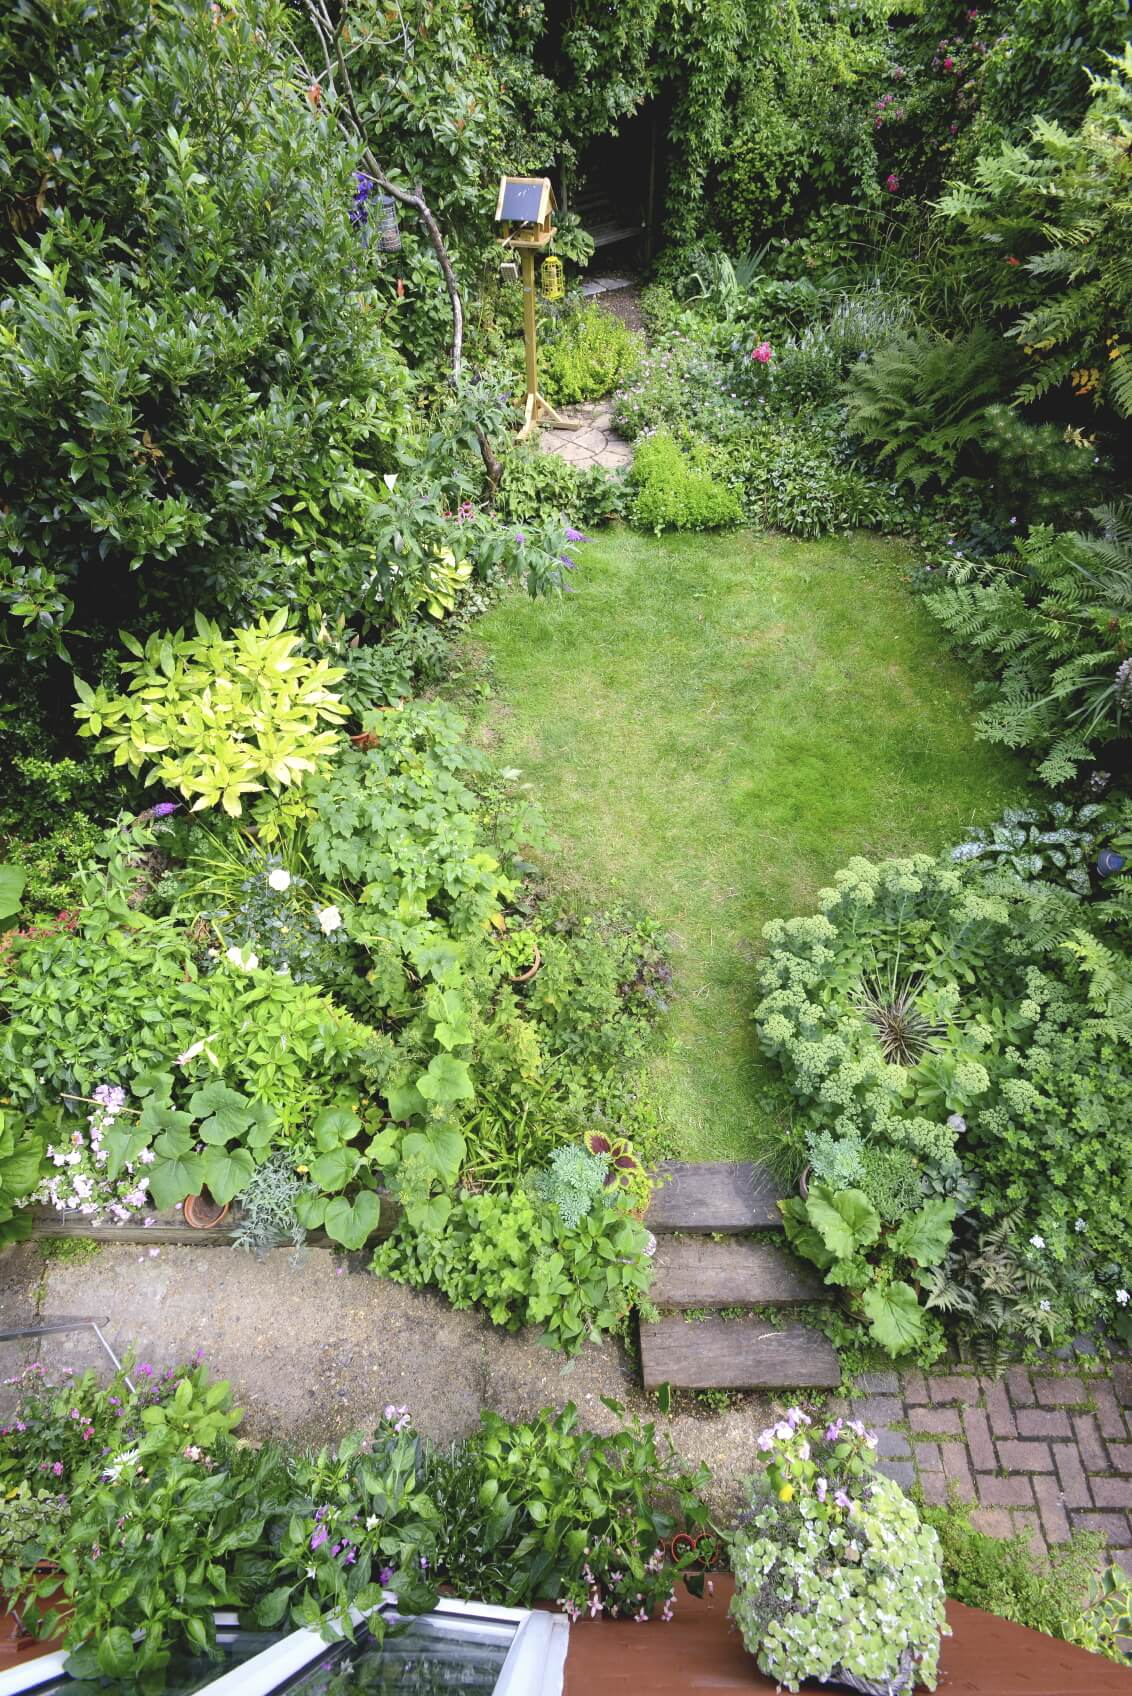 This yard has a small manicured lawn that has been surrounded by lush plant gardens. The plants have been left to run wild and appear to be swallowing the lawn area. This design makes it look as though the lawn has been carved out of the wilds of nature.